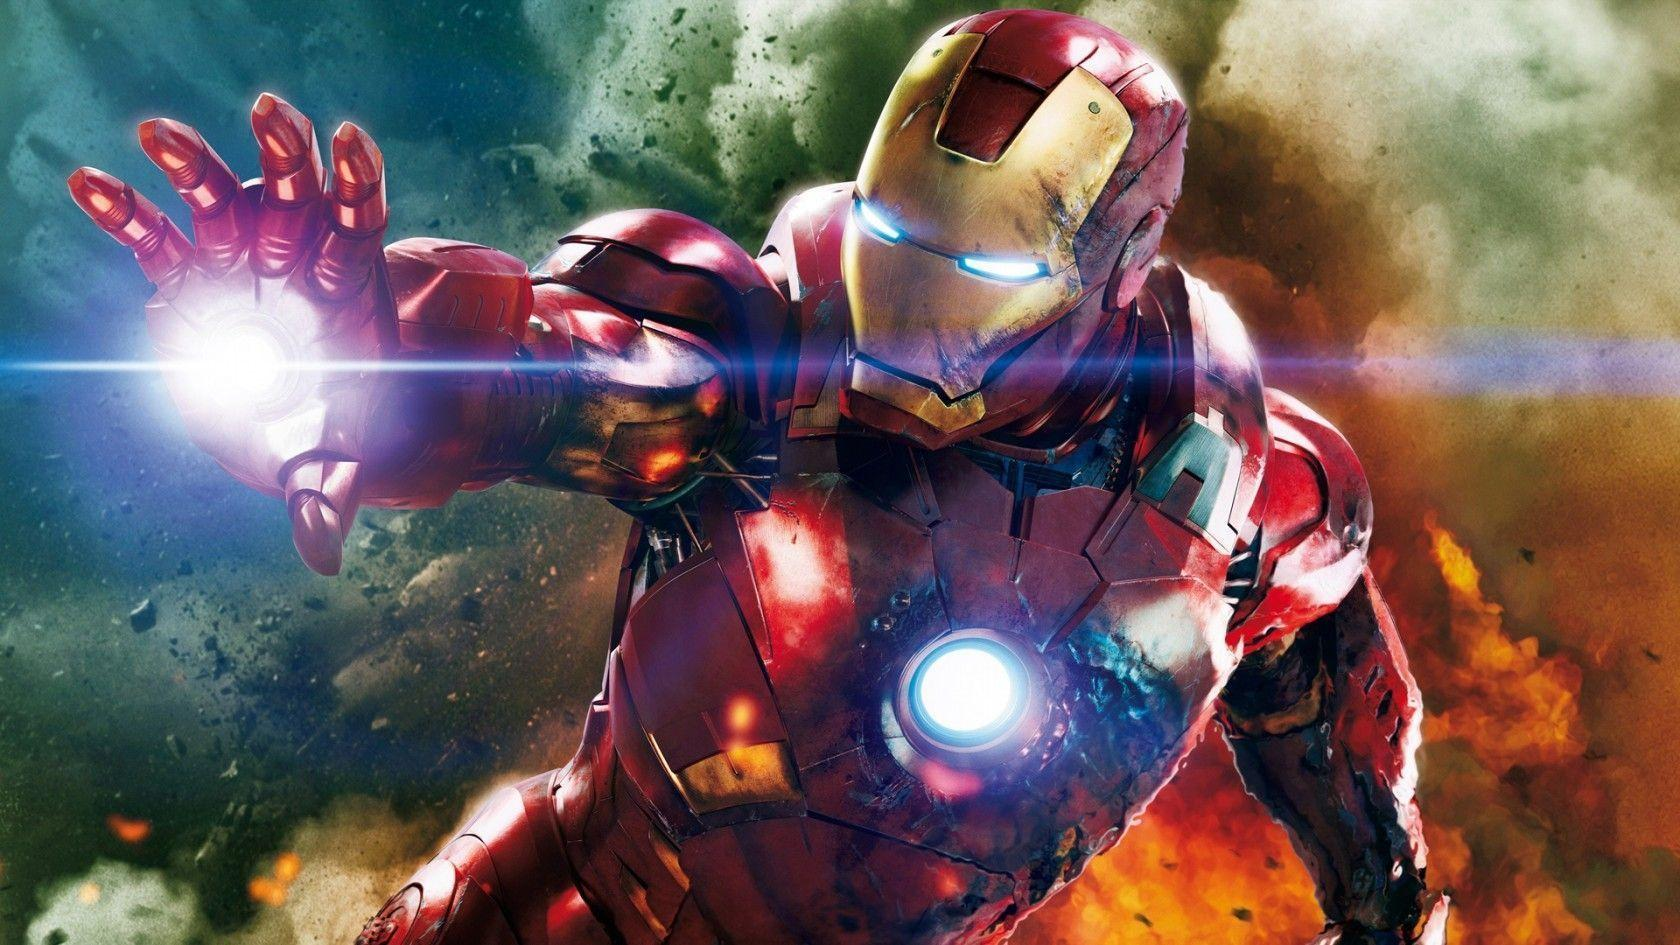 Wallpapers For Iron Man 3 Wallpaper Hd Android